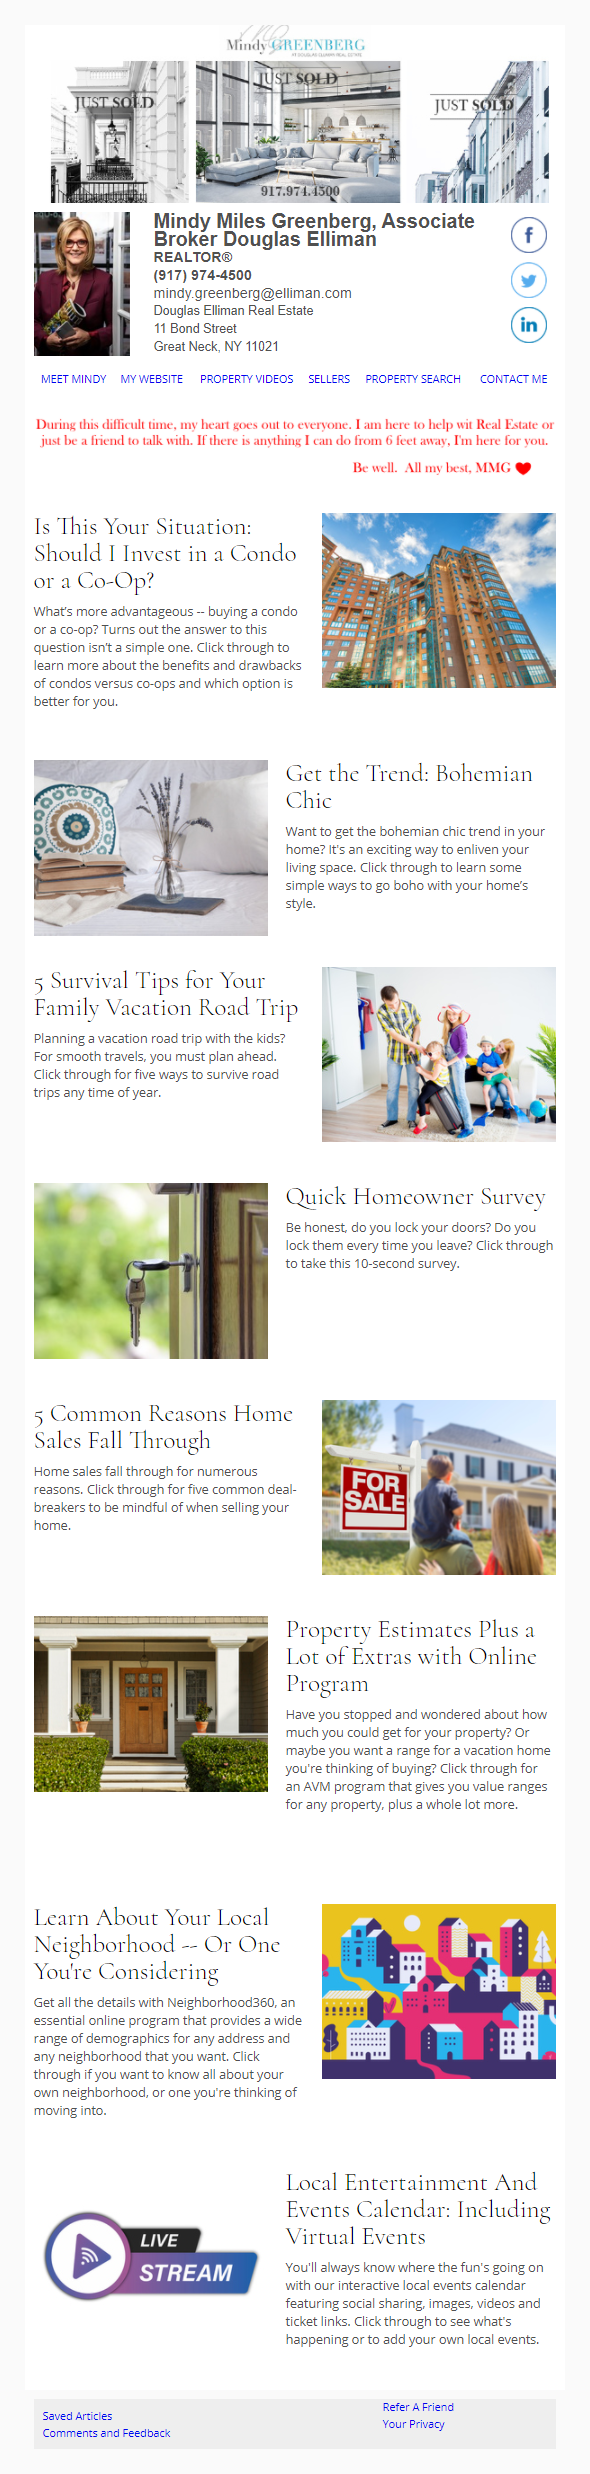 Mindy Greenberg With Douglas Elliman Real Estate - HomeActions Sample Email Newsletter